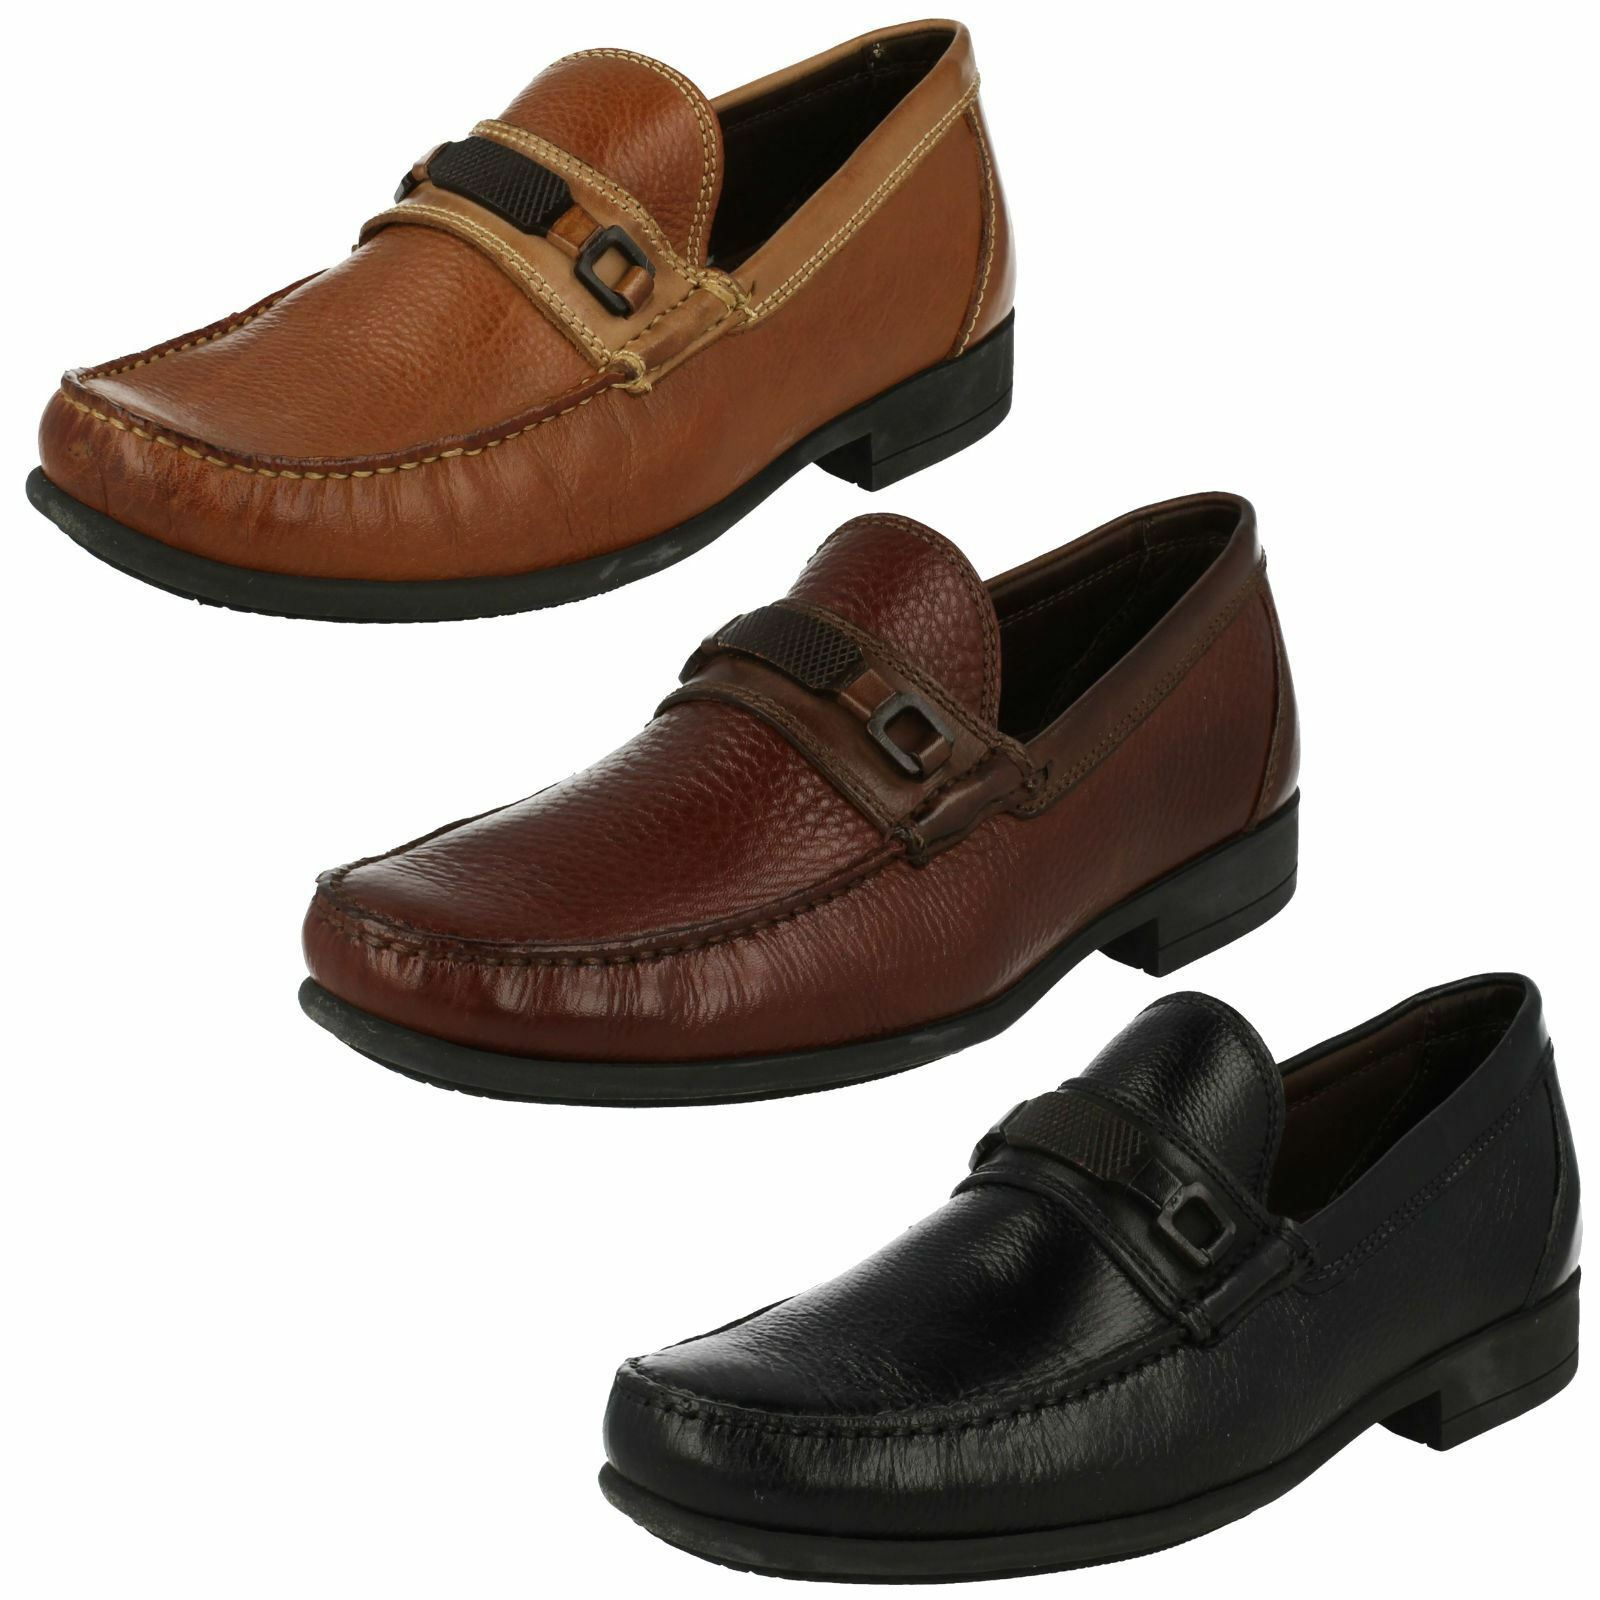 Mens Anatomic & Co Formal Shoes - Lins